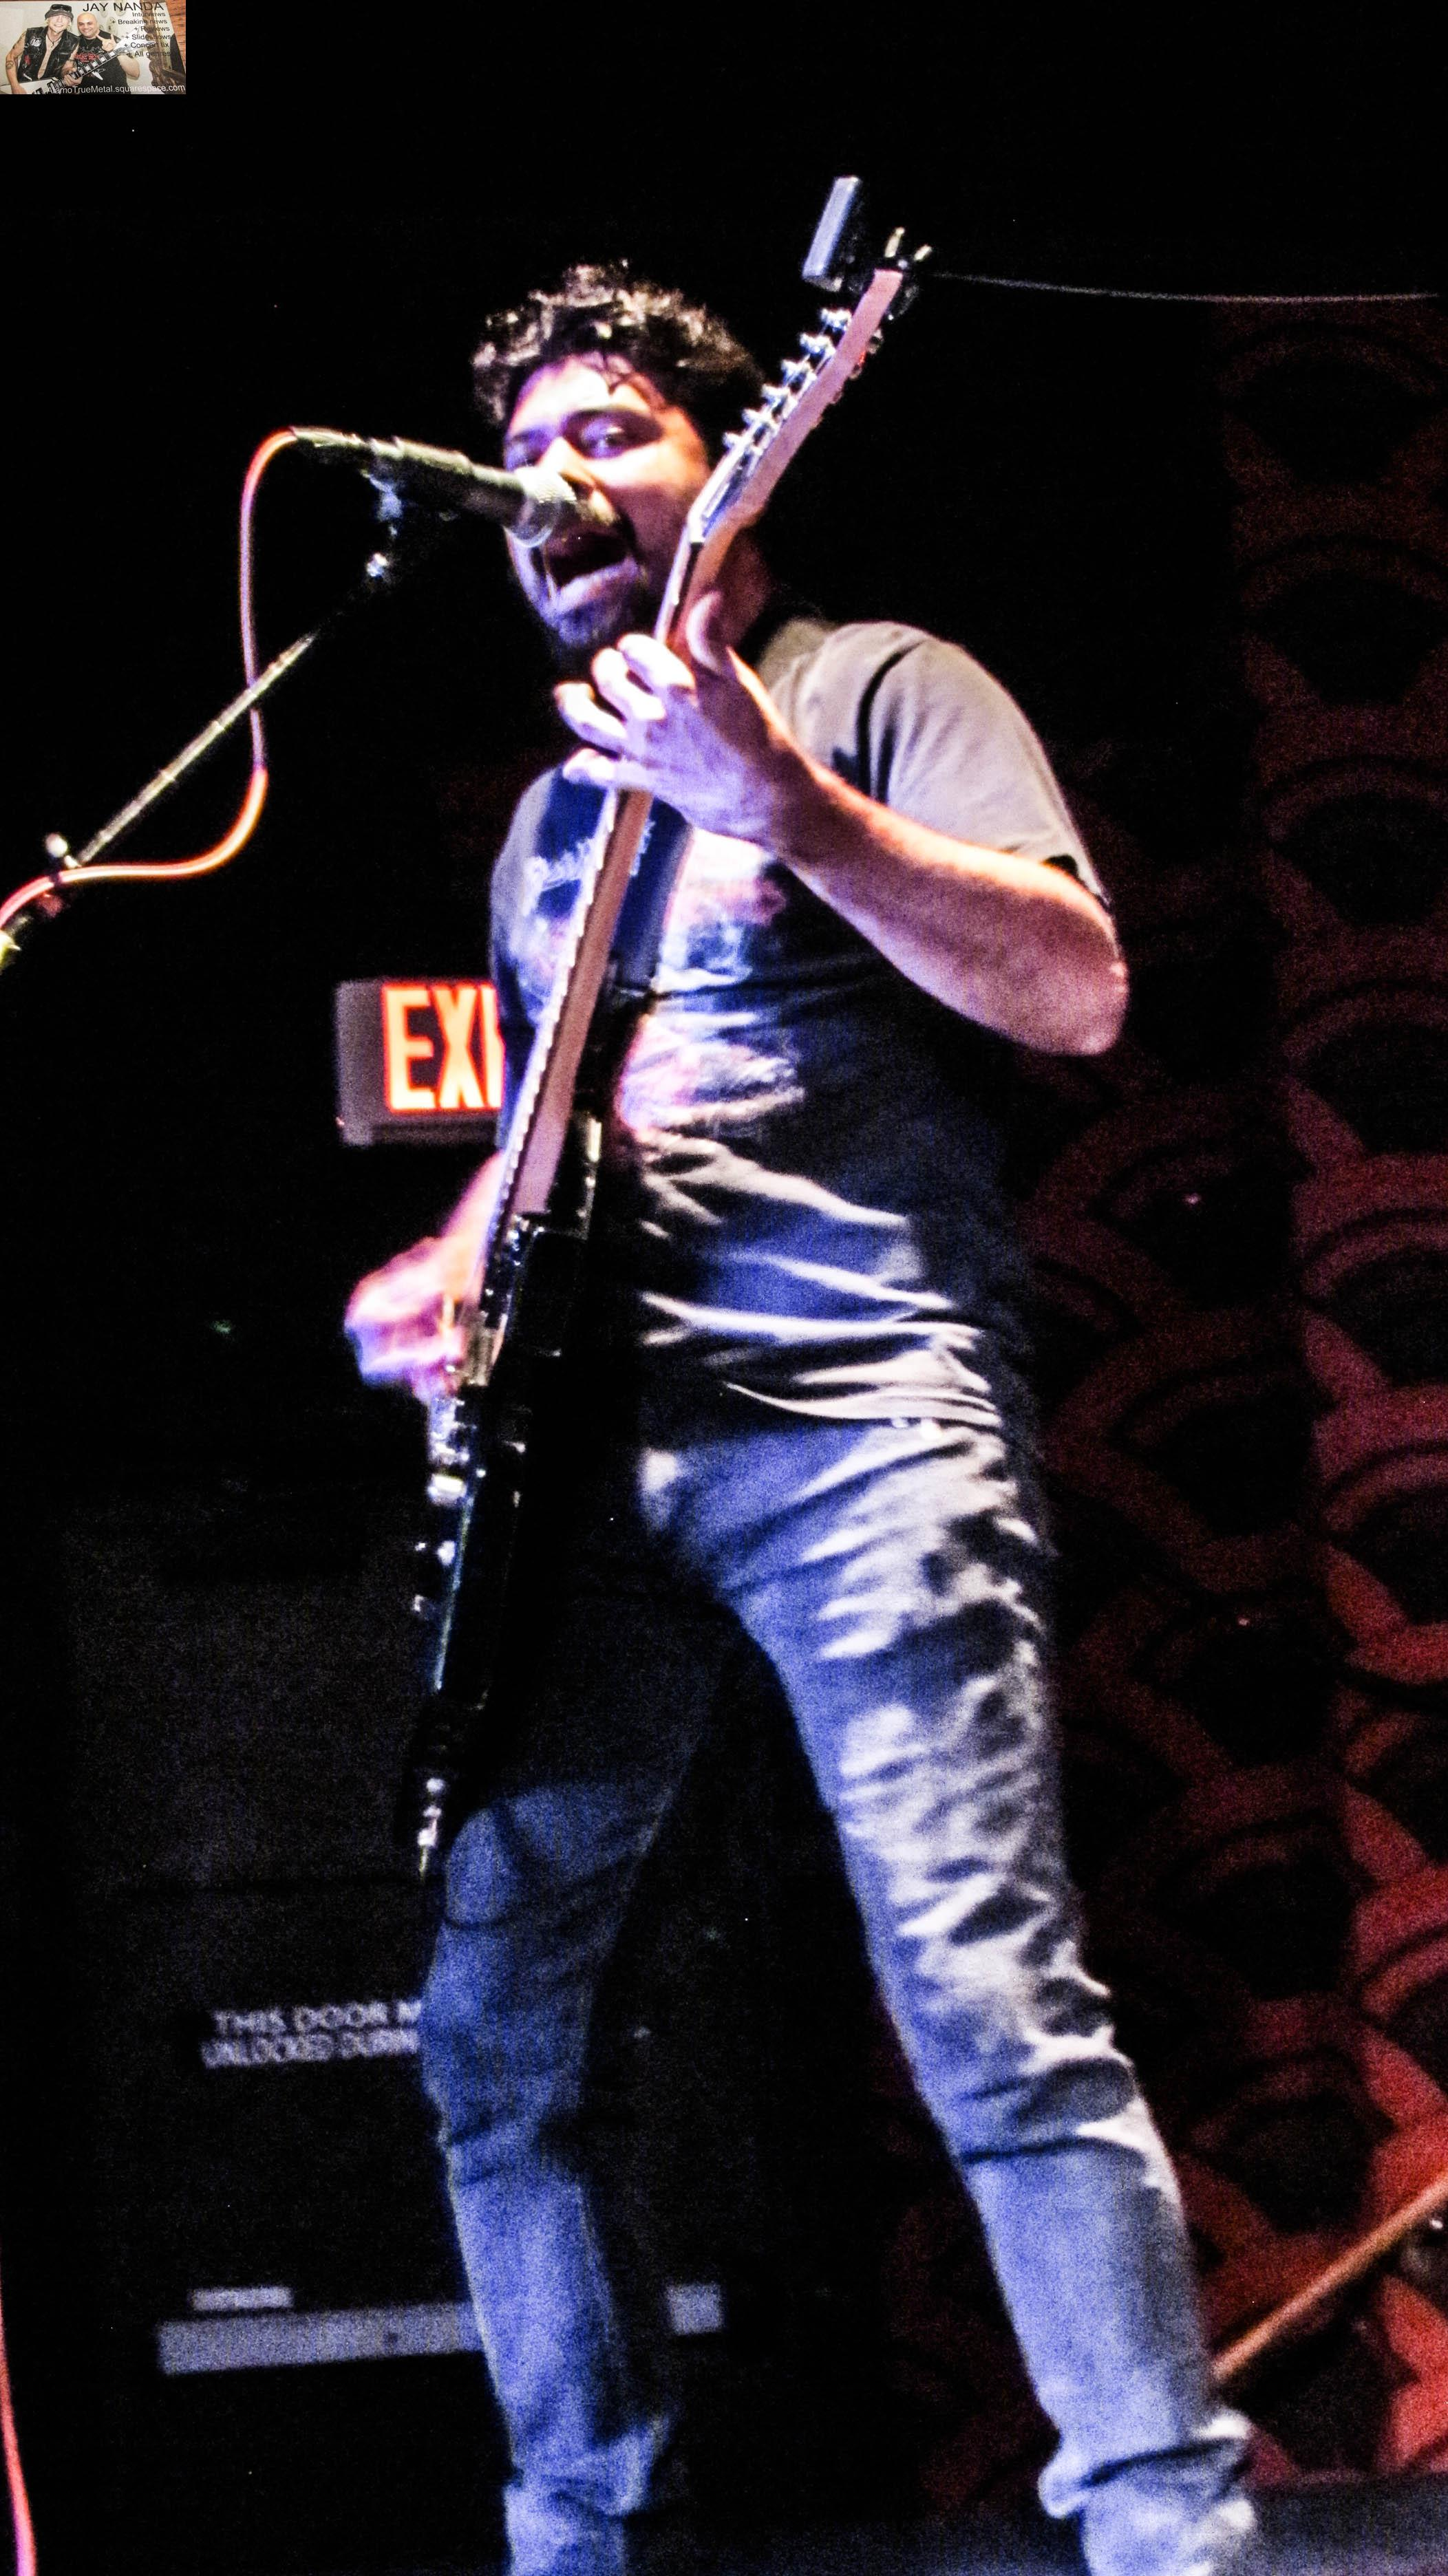 Ozzy Espinoza, vocalist/guitarist for local Megadeth tribute band Rust In Peace, achieved one of his dreams by sharing the stage with Ellefson on several songs.